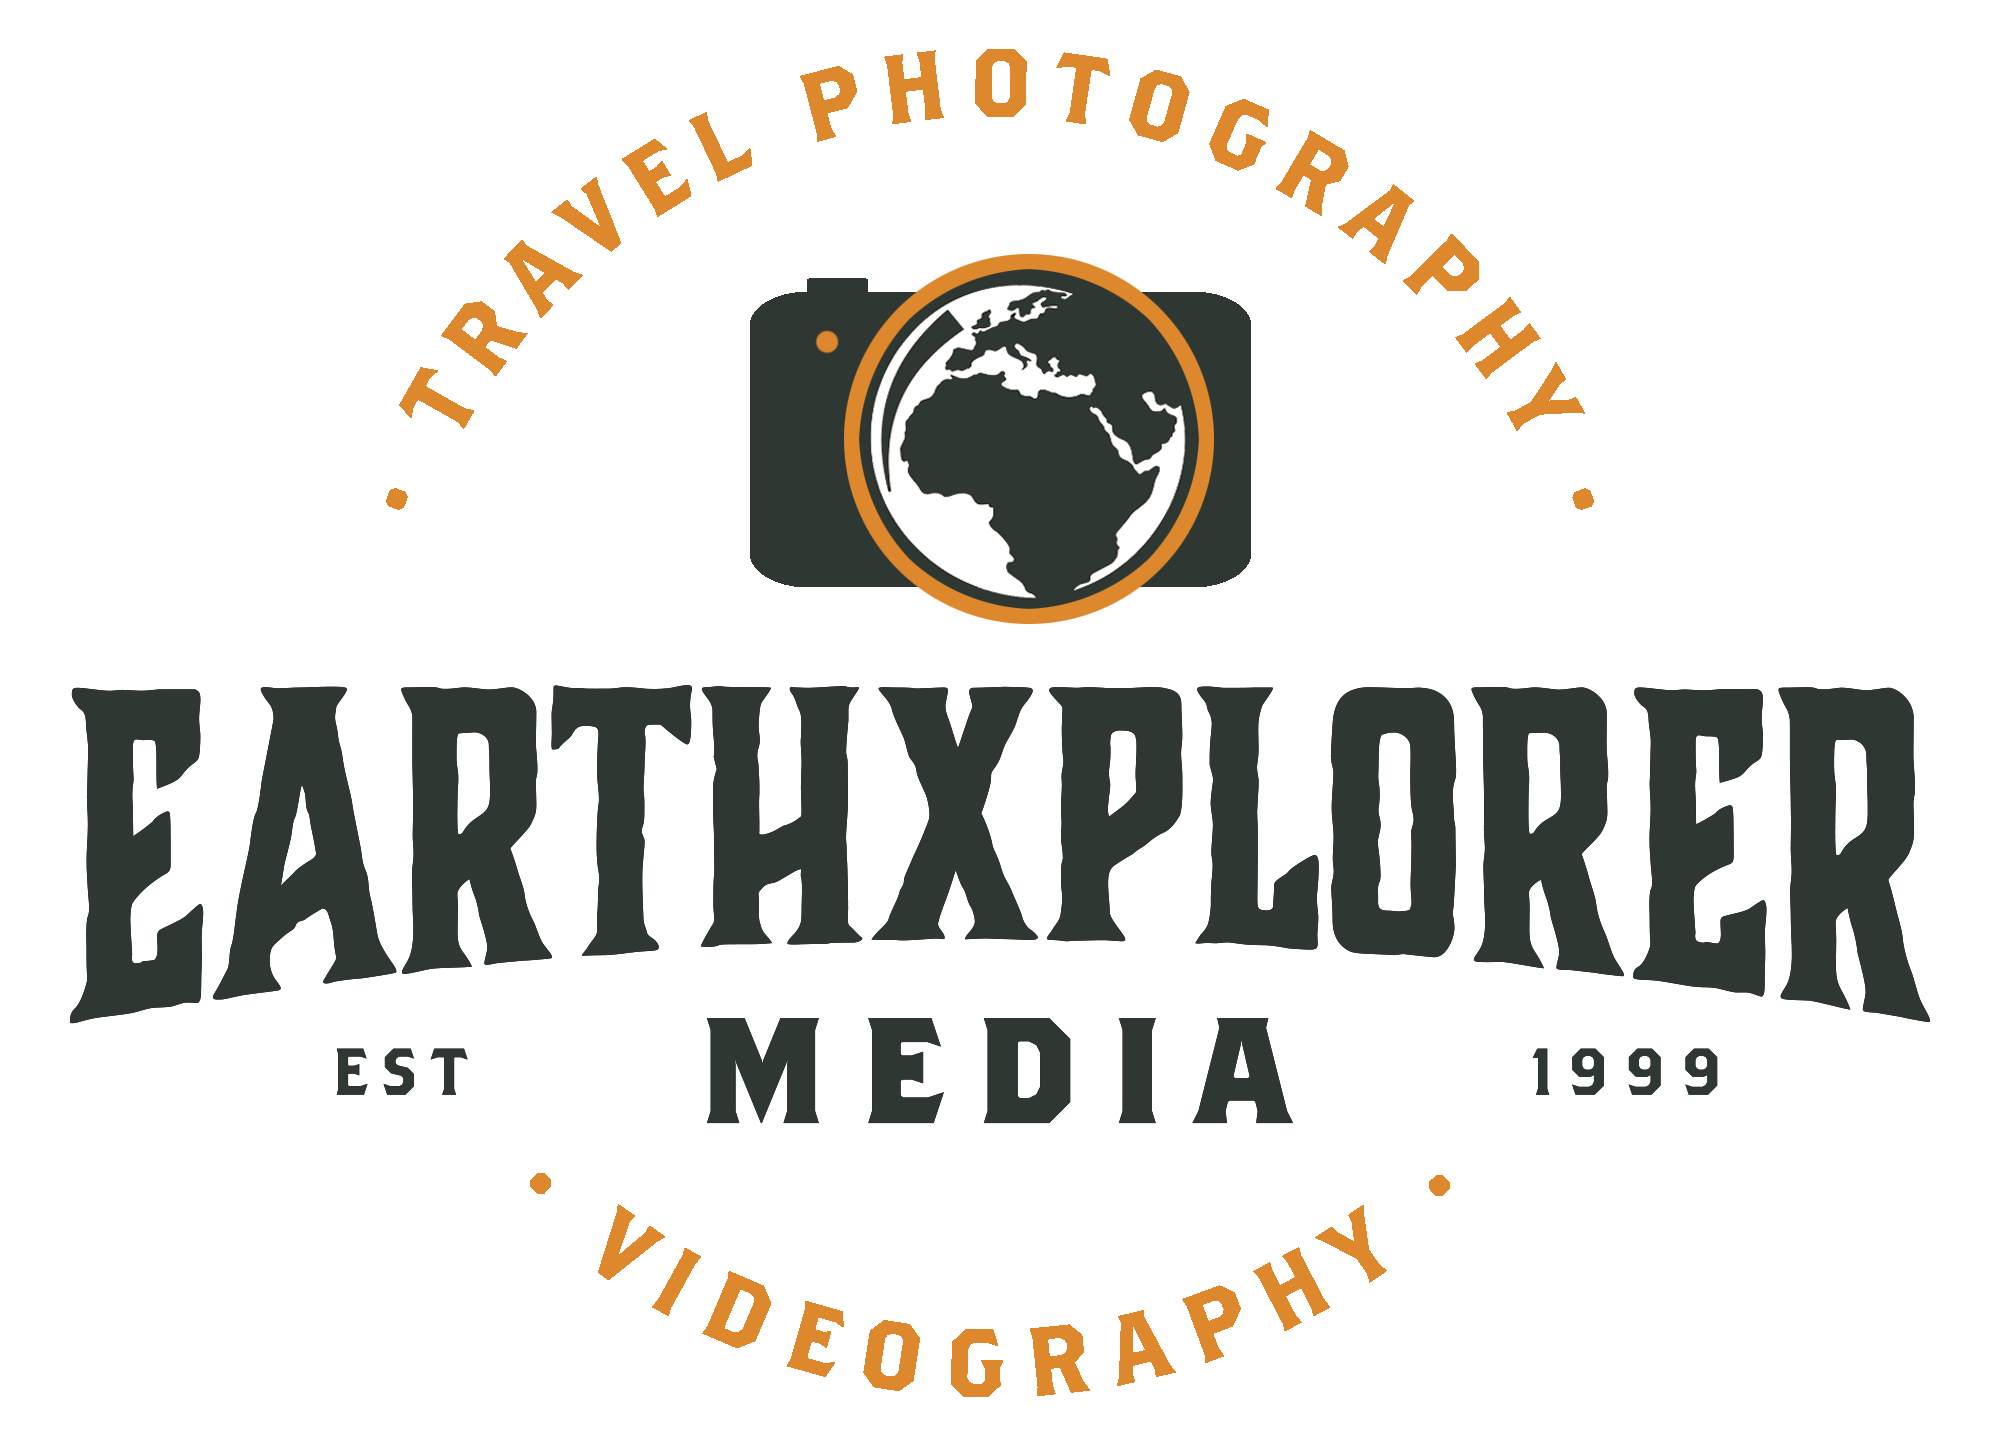 earthXplorer media logo